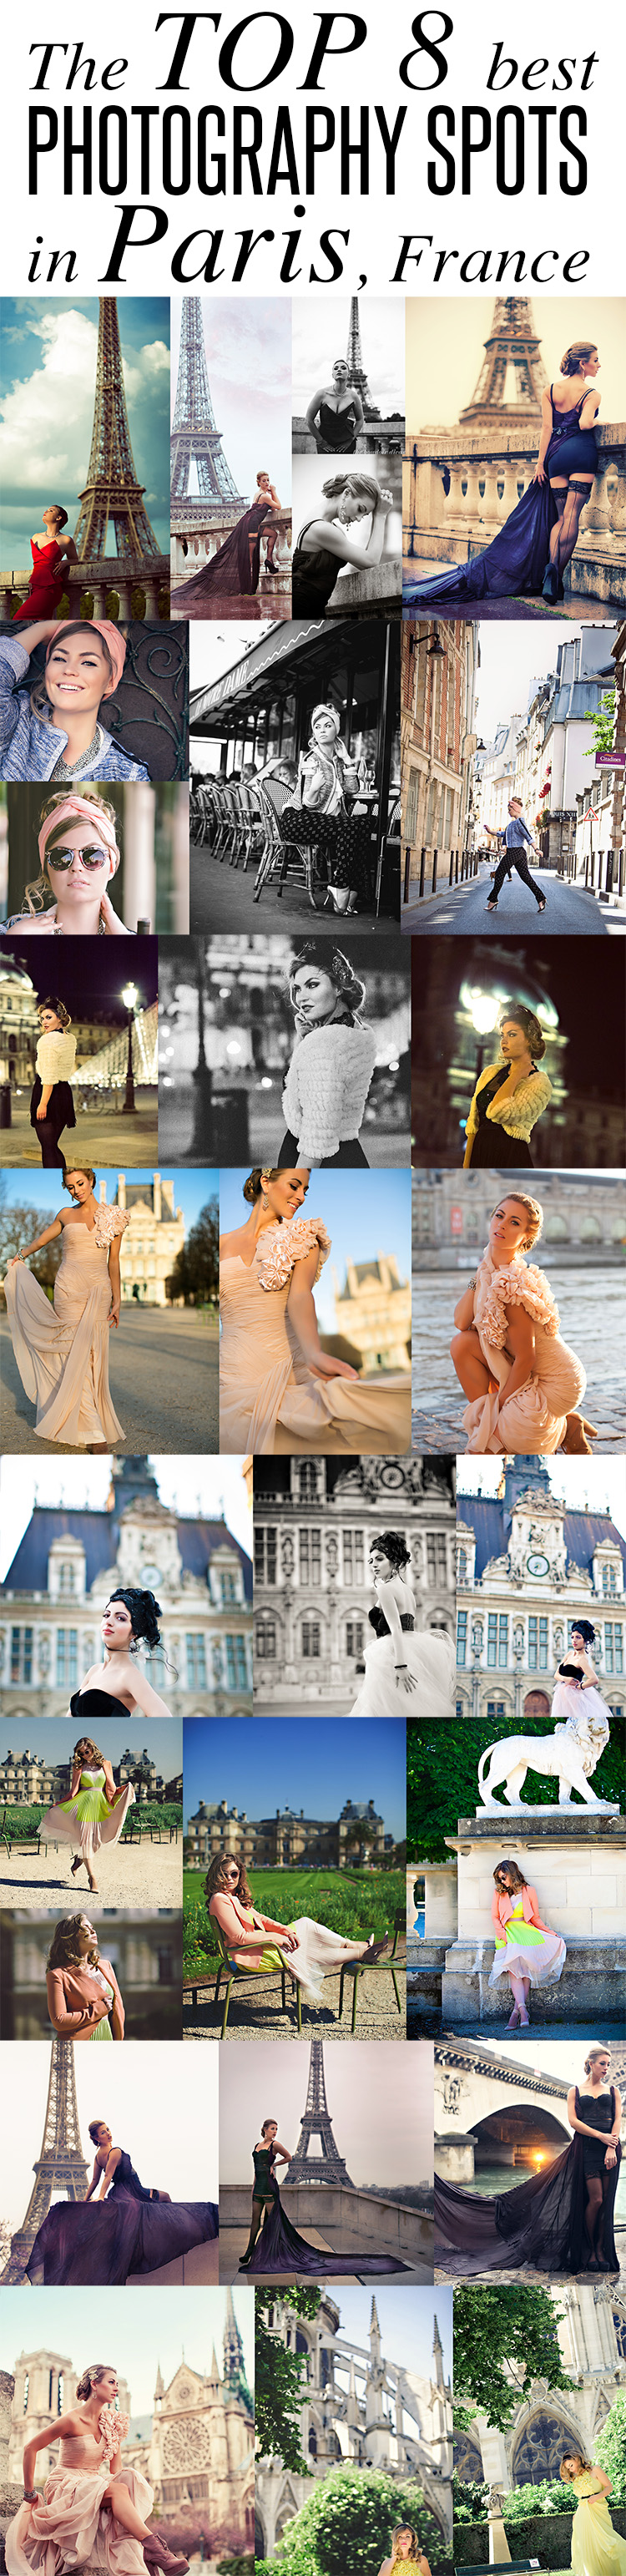 The top 8 BEST locations for photography & photo shoots in PARIS, France! http://www.thedivasblog.com/best-photo-locations-paris/